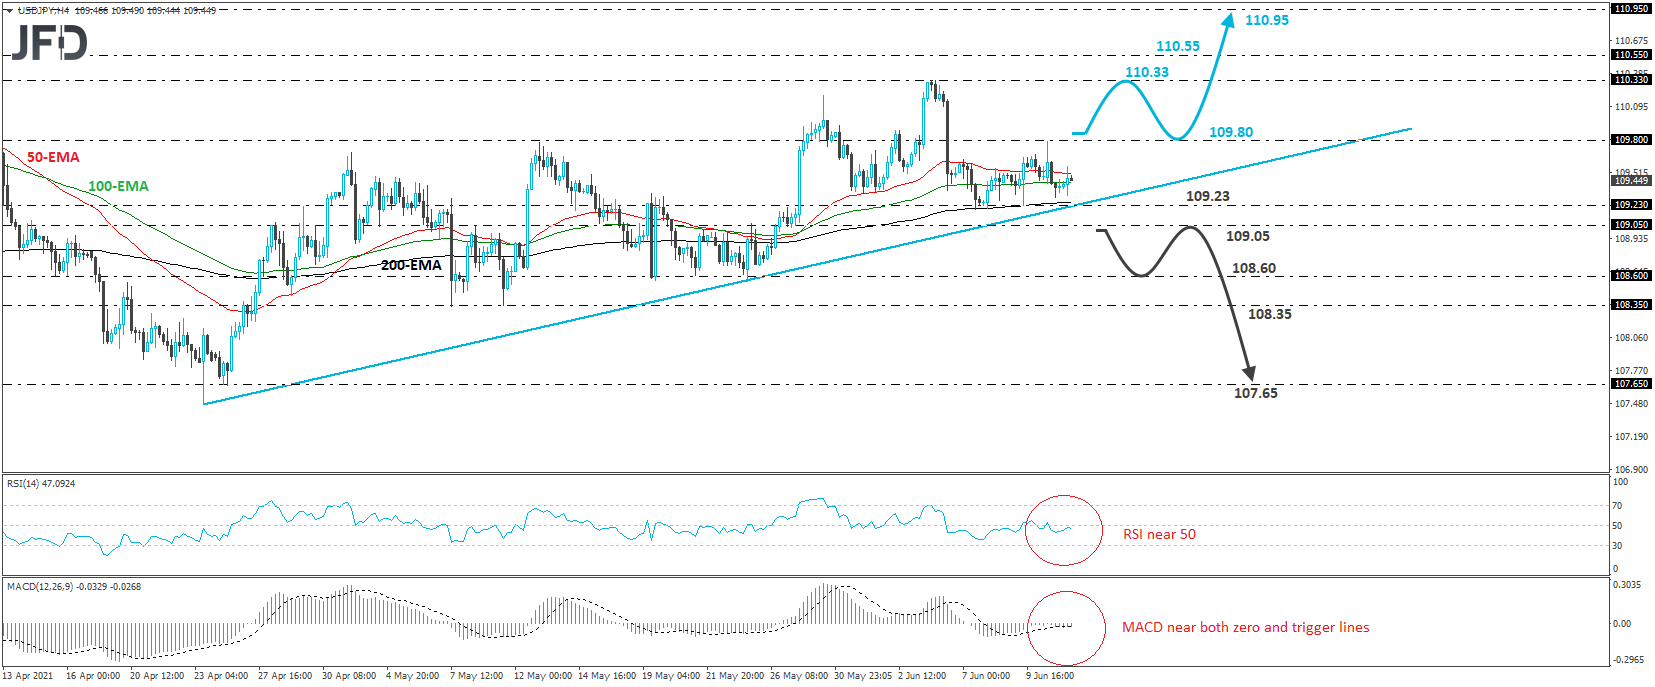 USD/JPY 4-hour chart technical analysis